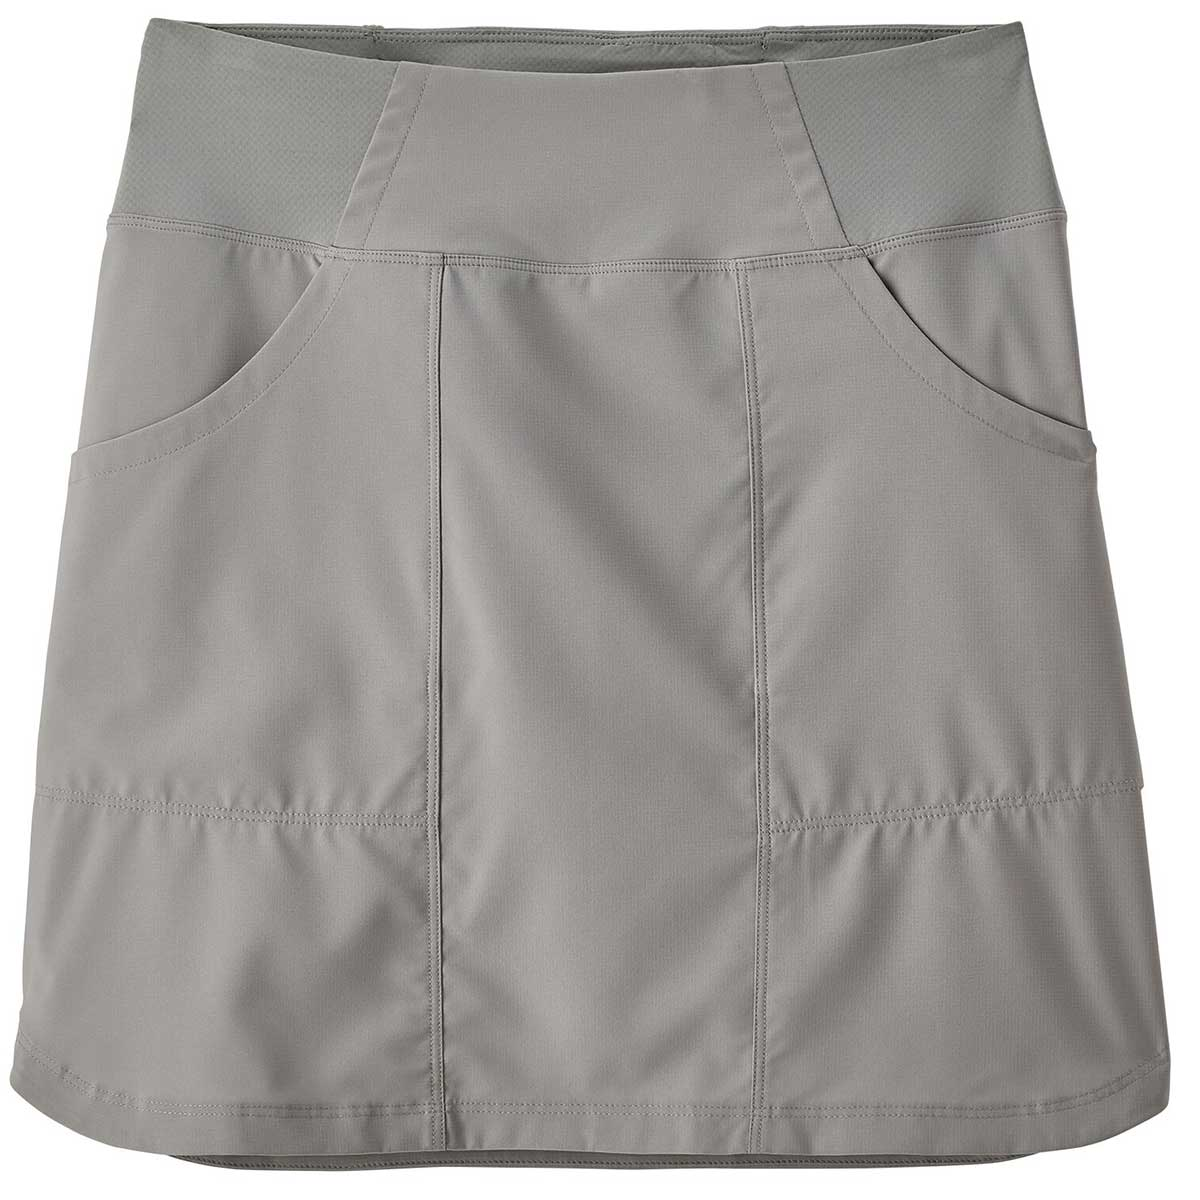 Patagonia women's Tech Skort in Drifter Grey front view